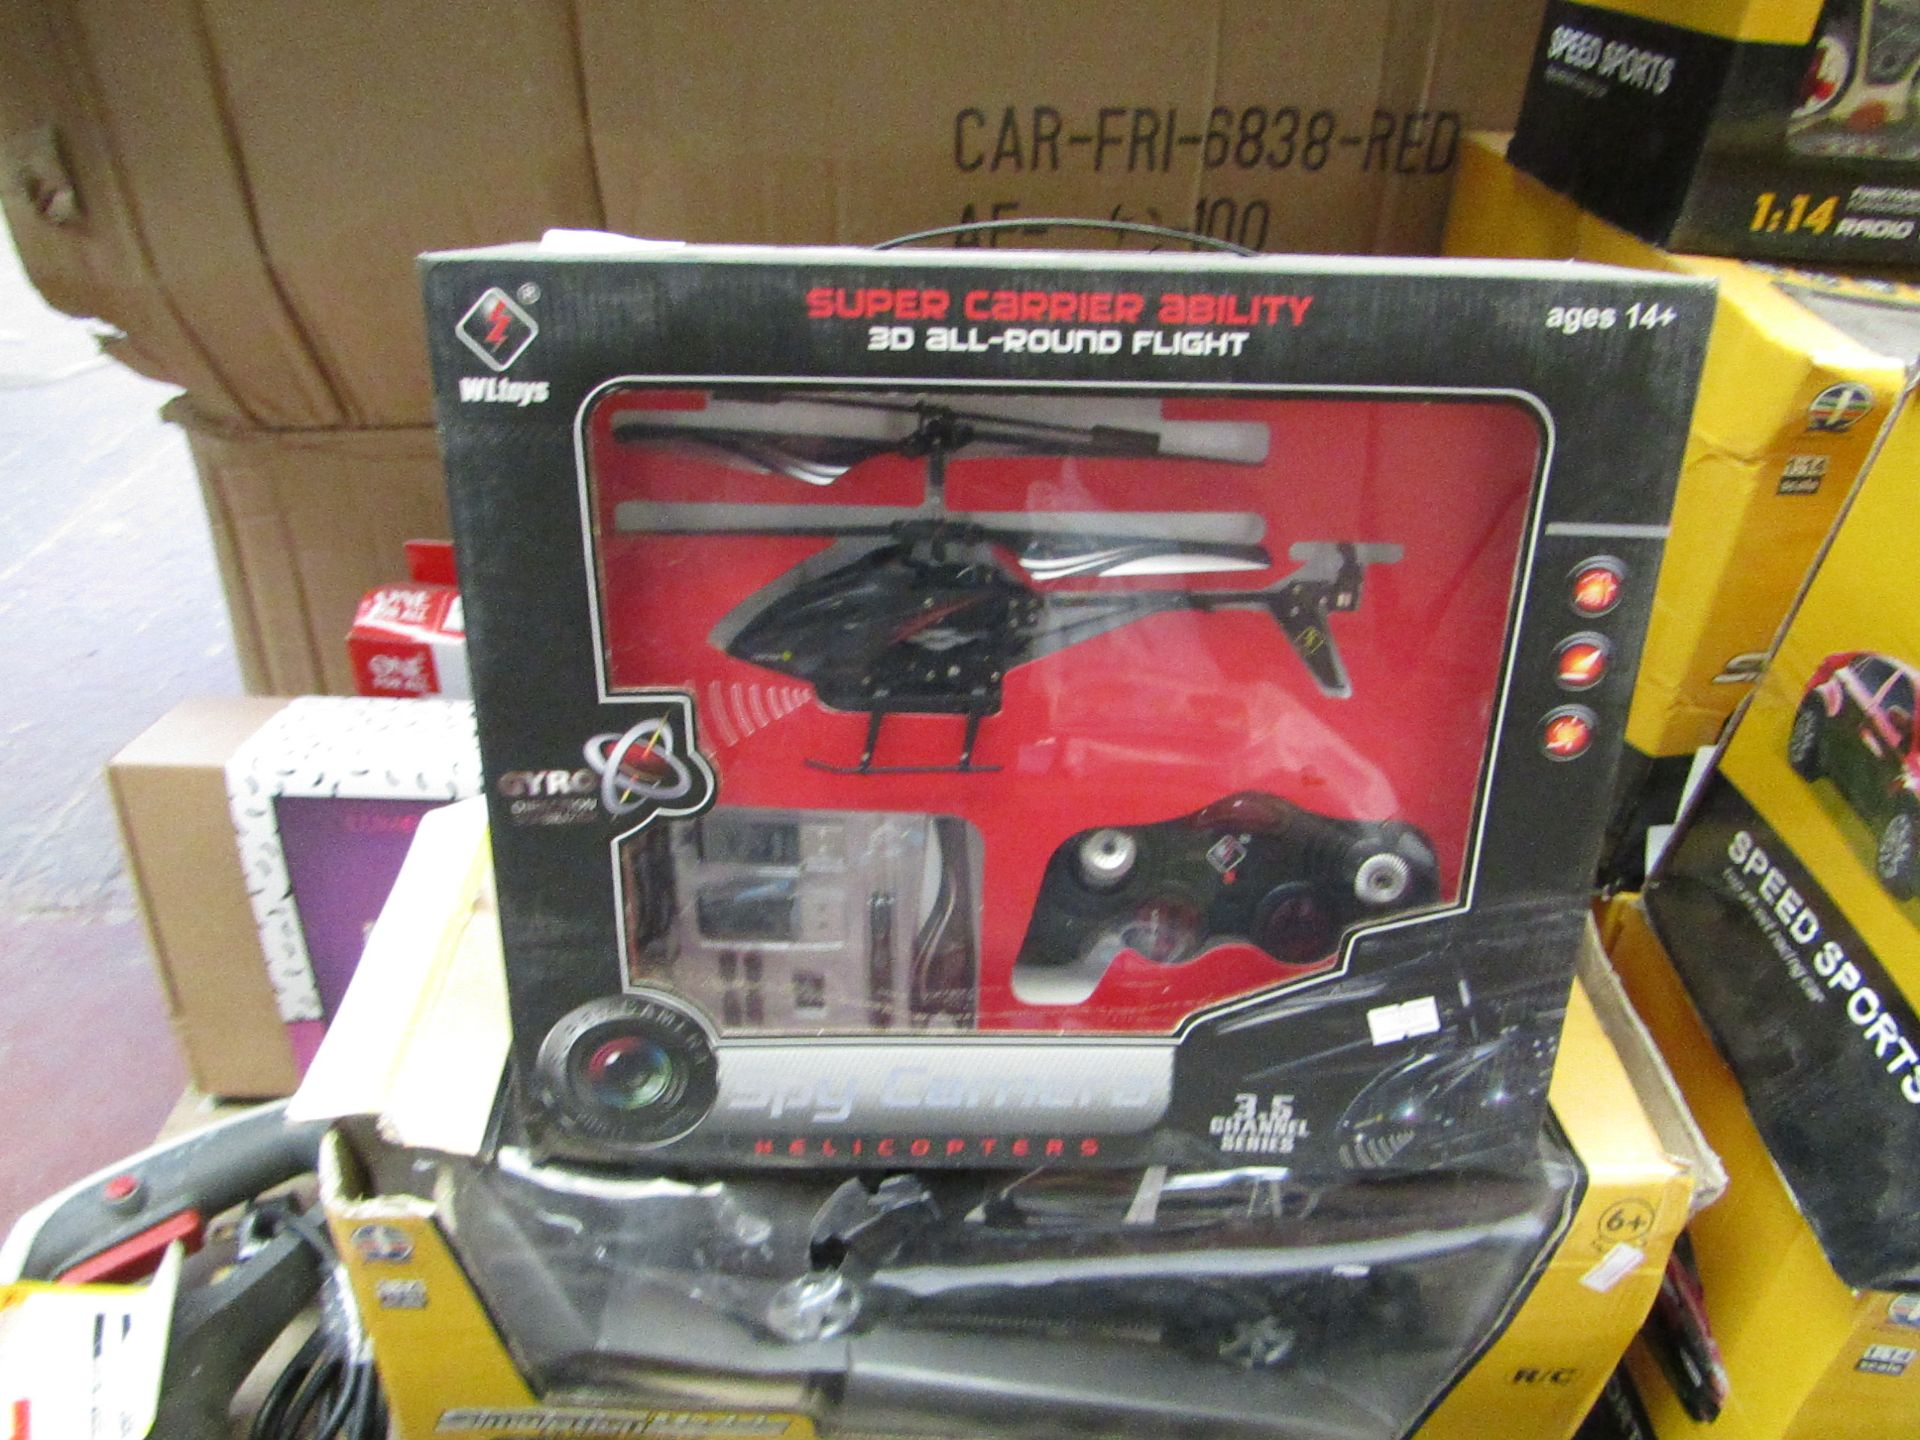 Lot 15 - Super Carrier Ability, 3D all-round flight. Remote control Spy Camera Helicopter, unused in box